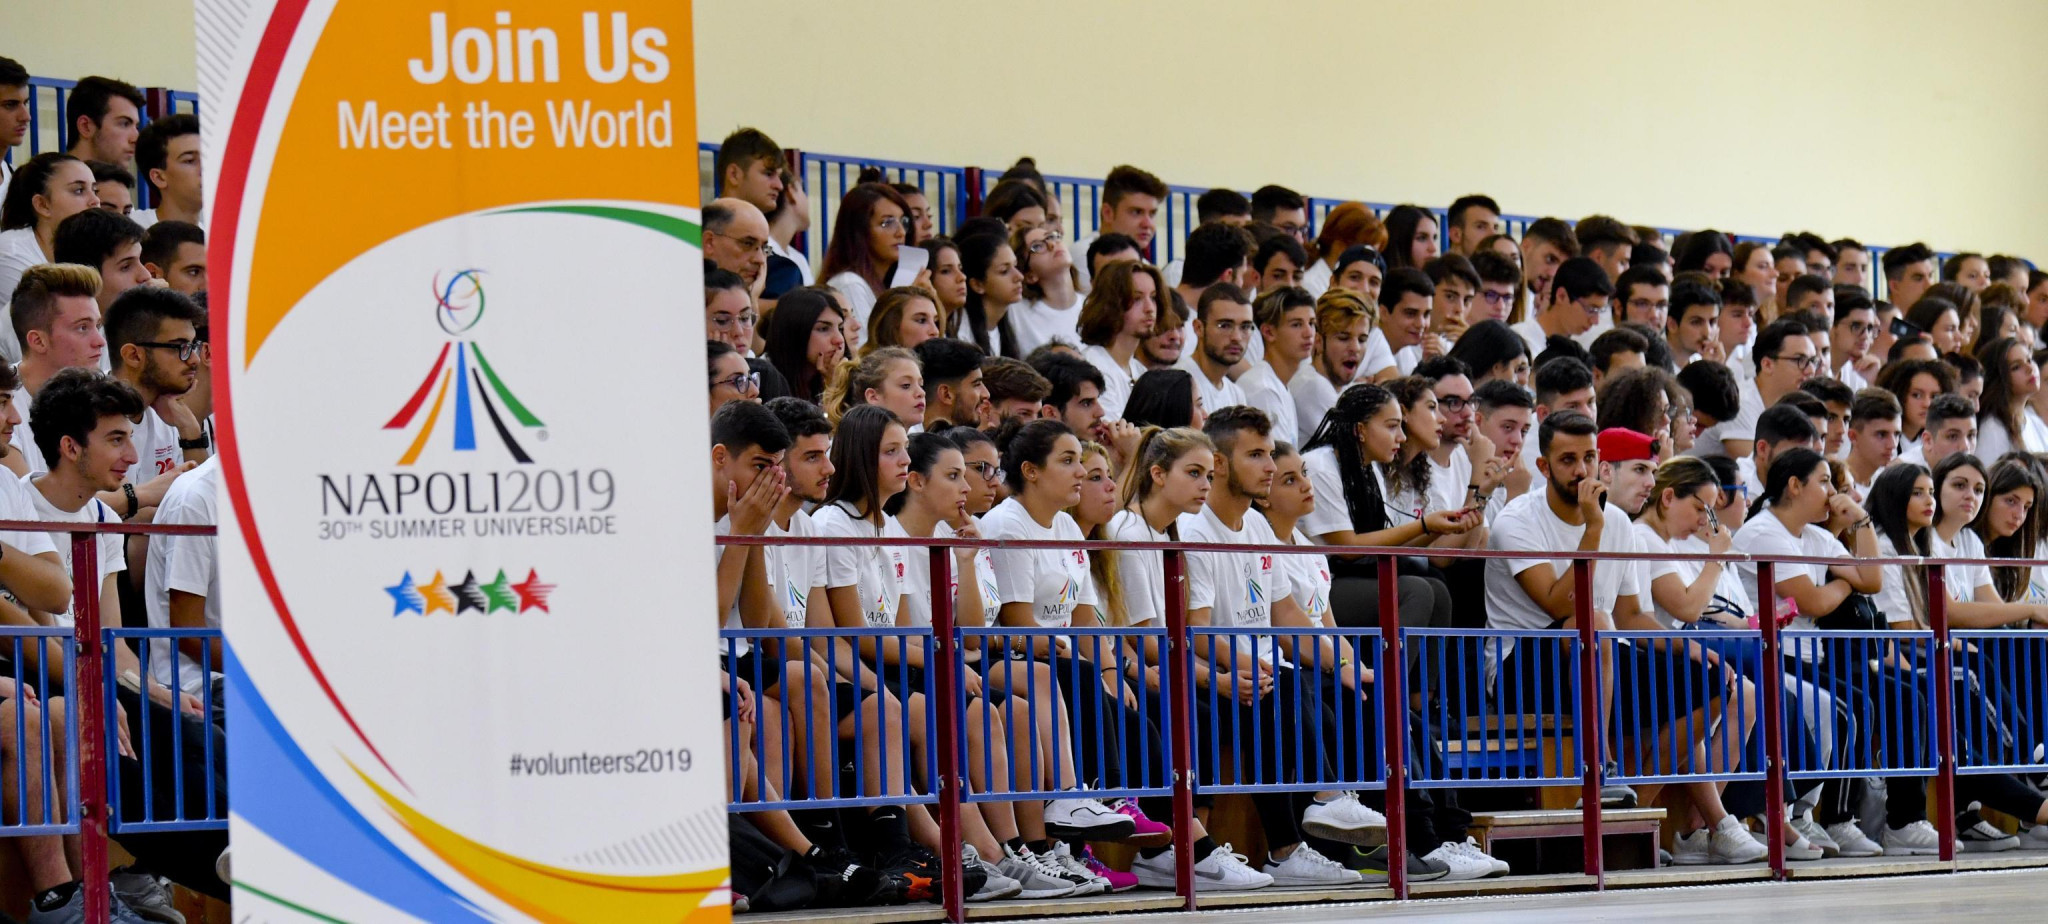 Naples 2019 has announced that as many as 5,000 people have applied to be volunteers at this year's Summer Universiade ©Naples 2019